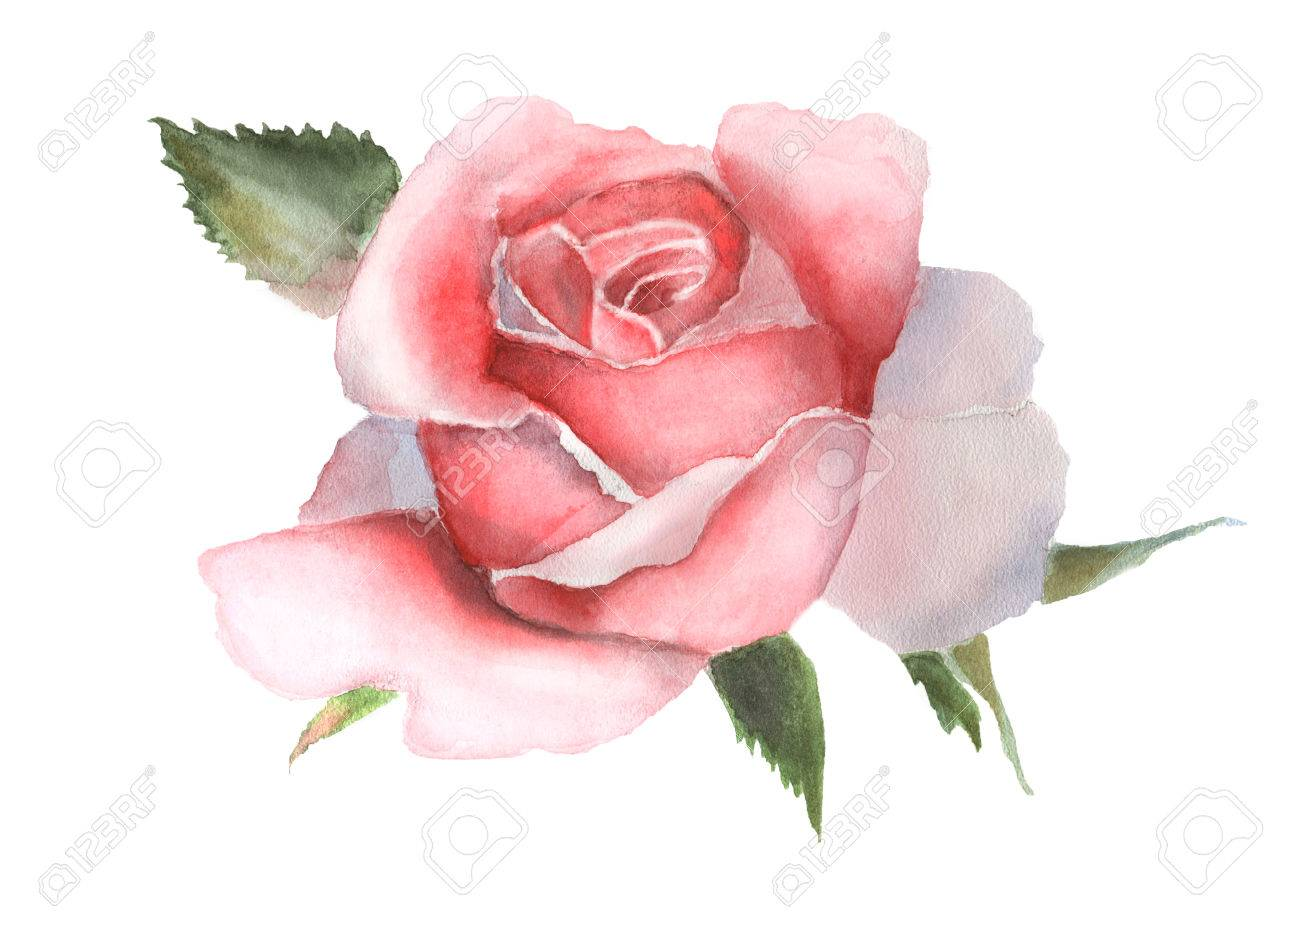 Watercolor pink rose isolated on white background. Handmade drawing. - 66293837